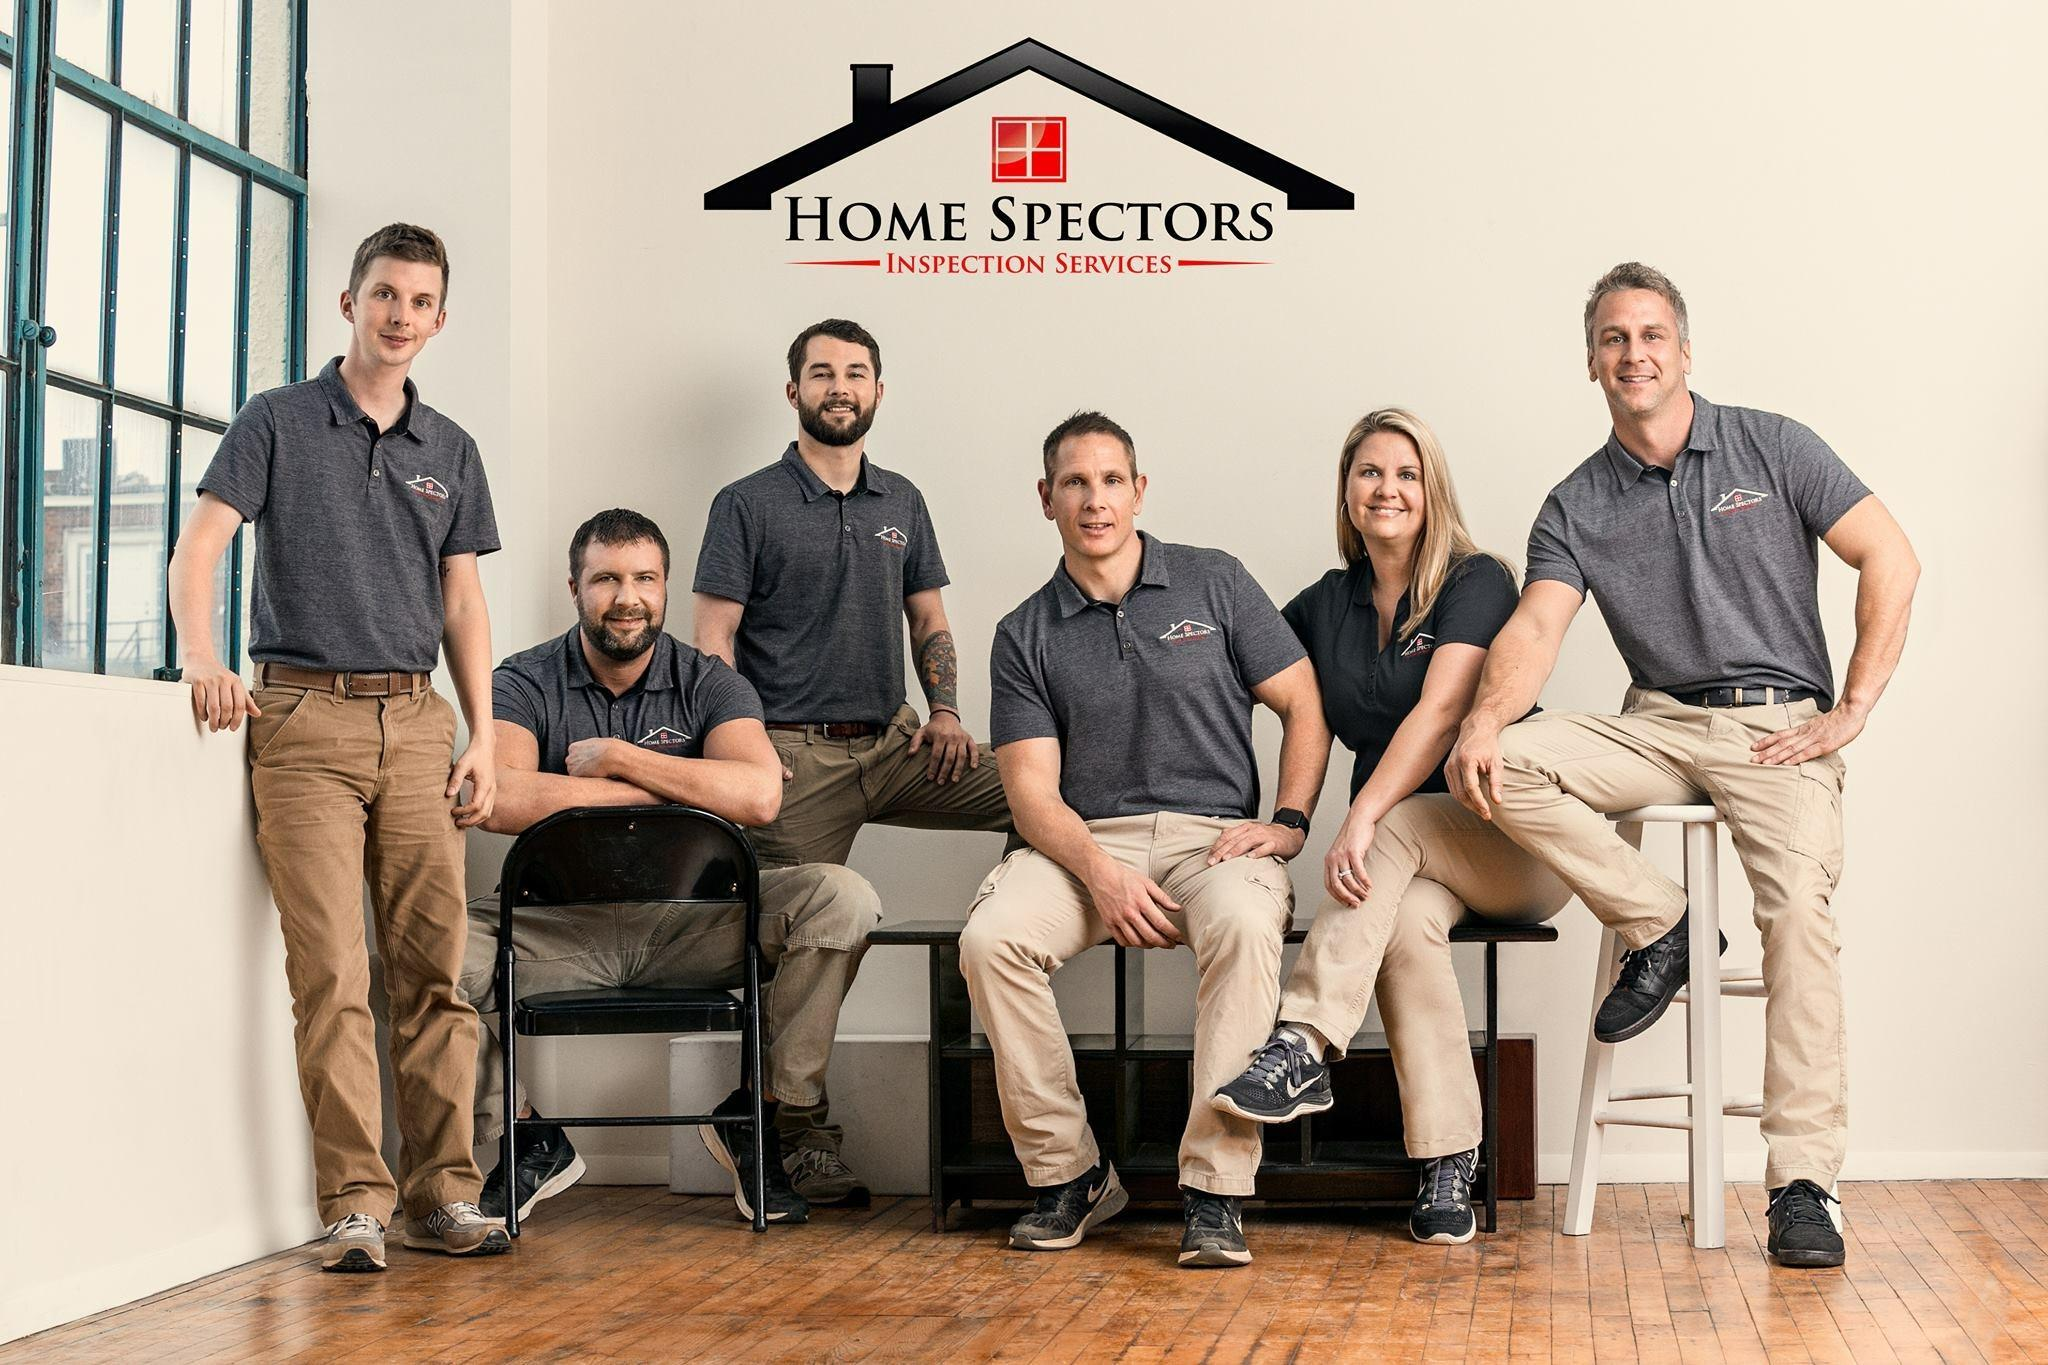 Some of the best inspectors in the area.